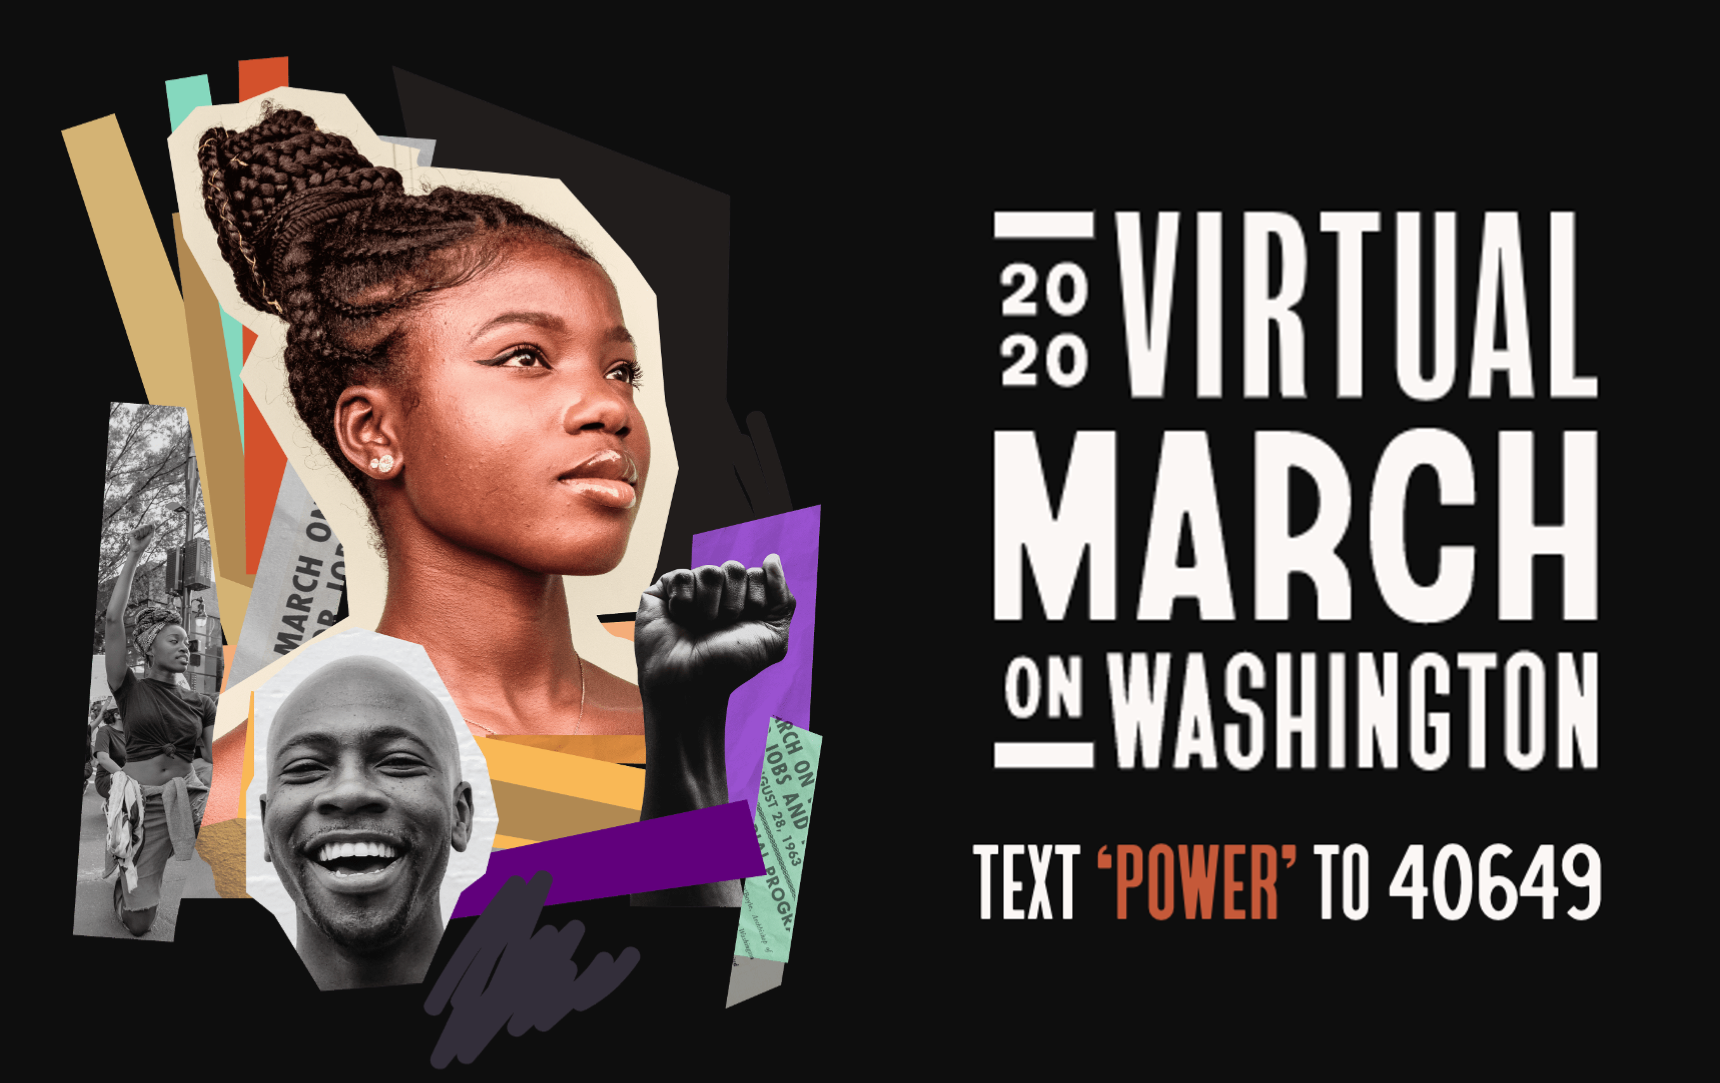 Virtual March on Washington